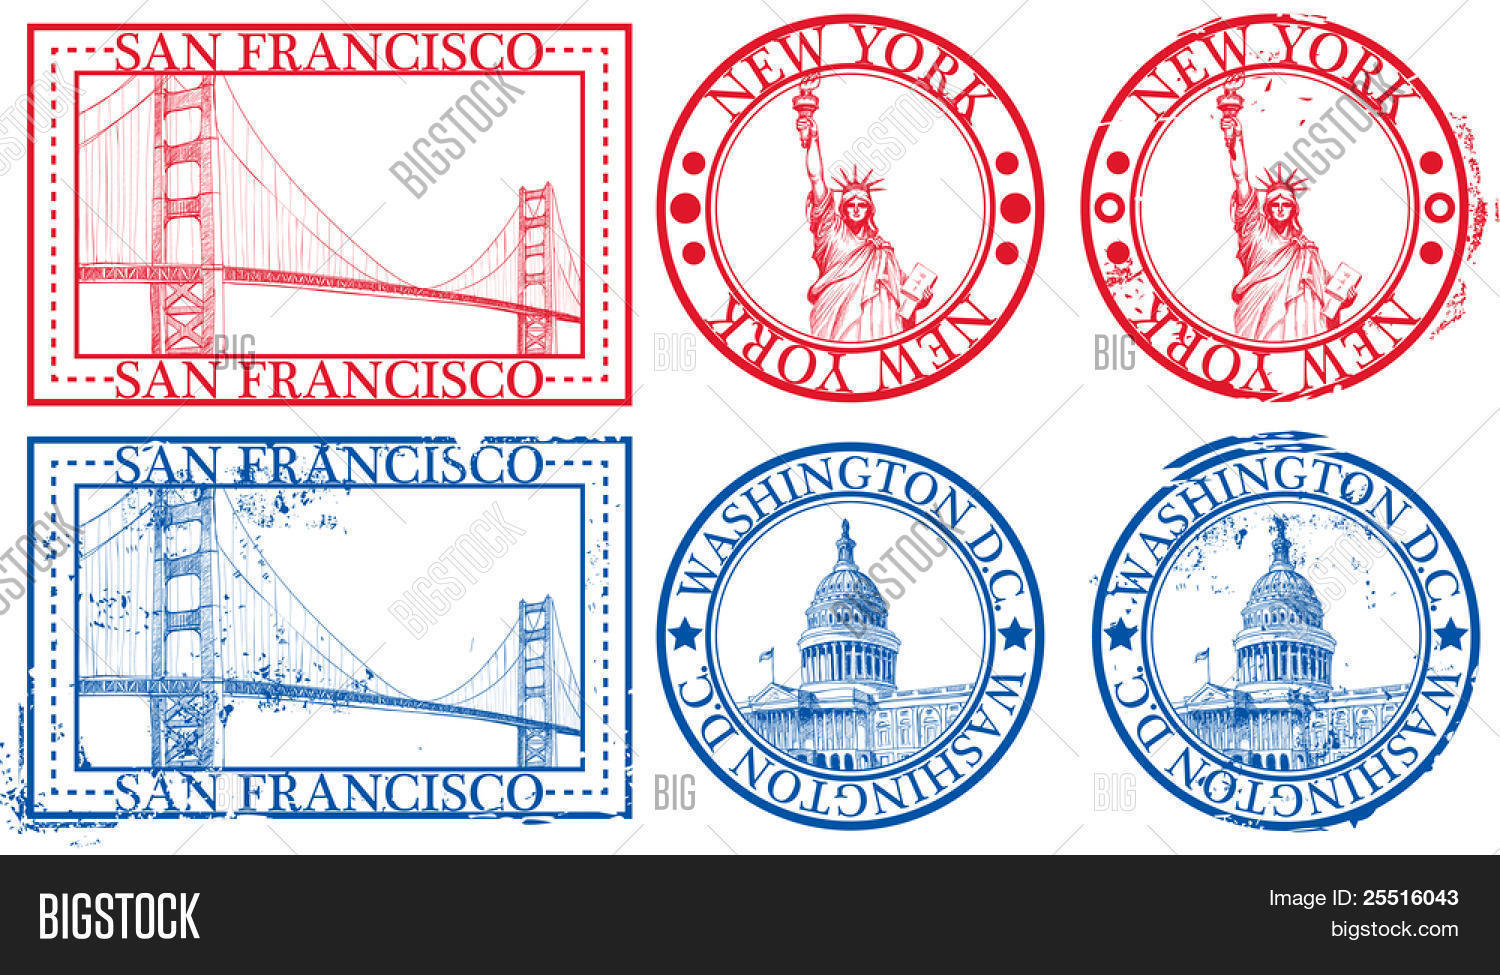 Usa famous cities stamps symbols vector photo bigstock usa famous cities stamps with symbols new york statue of liberty san buycottarizona Image collections